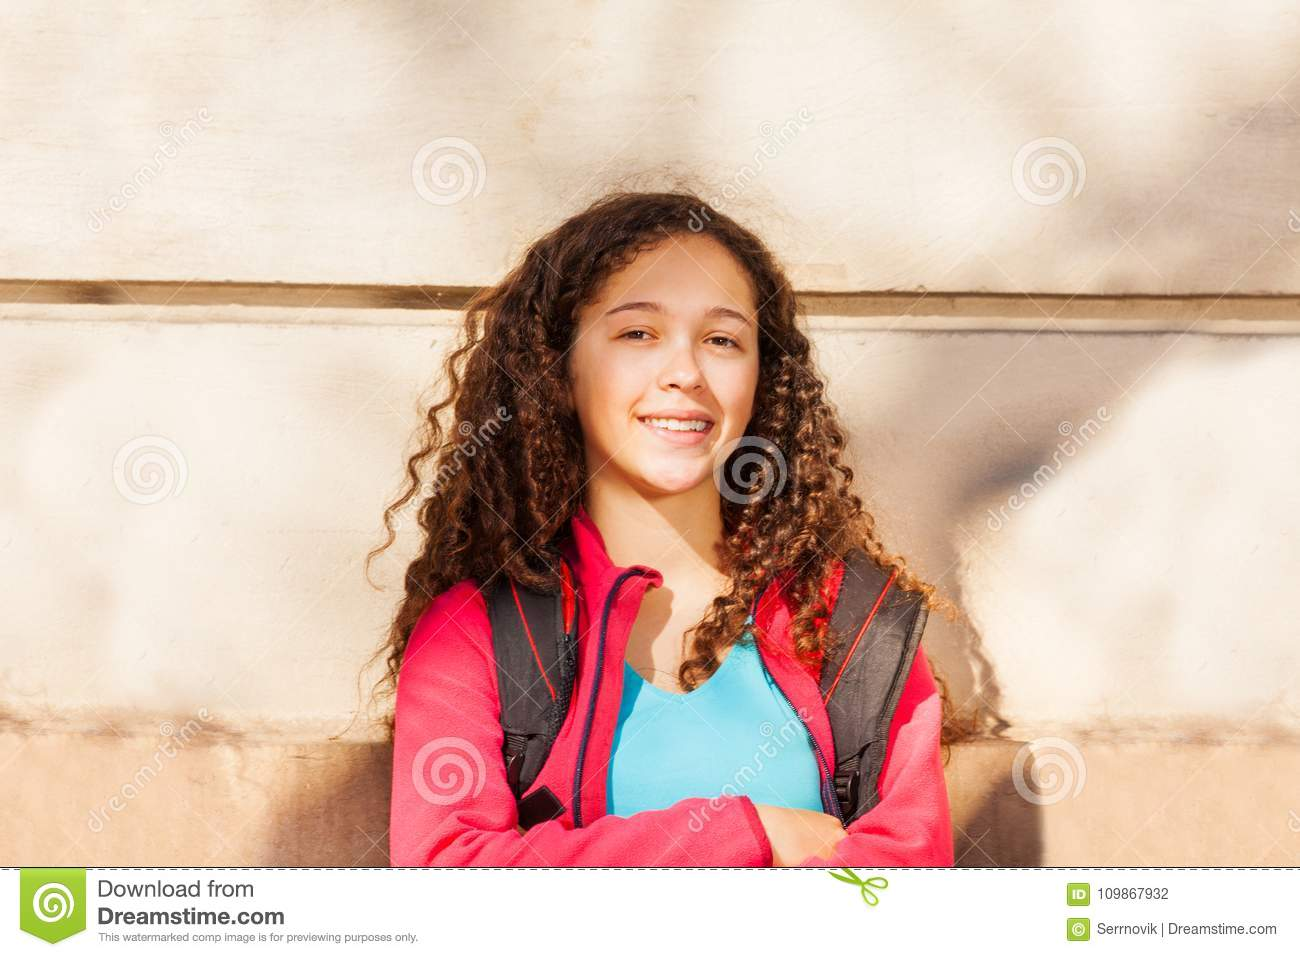 5b5e19f929c Close-up portrait of teenage curly-haired girl with backpack, standing  against the wall at sunny day and looking at camera